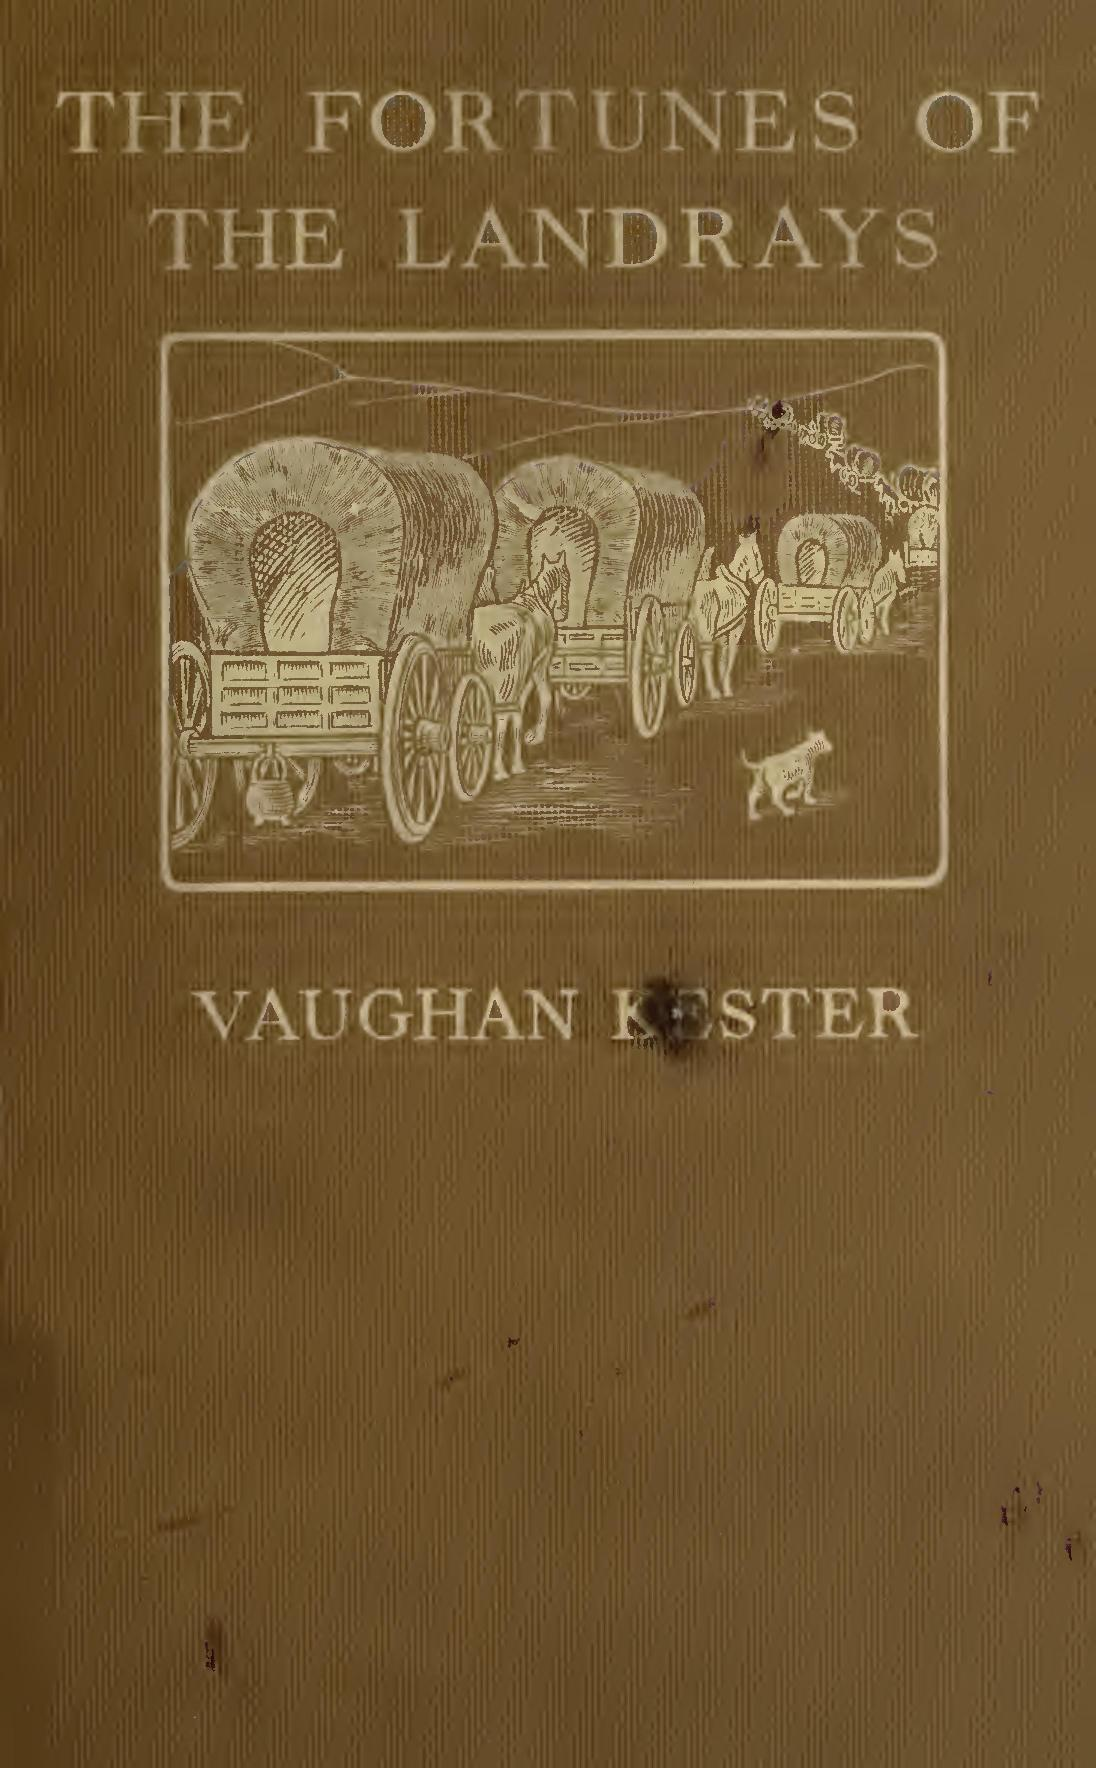 The Fortune of the Landrays, by Vaughn Kester